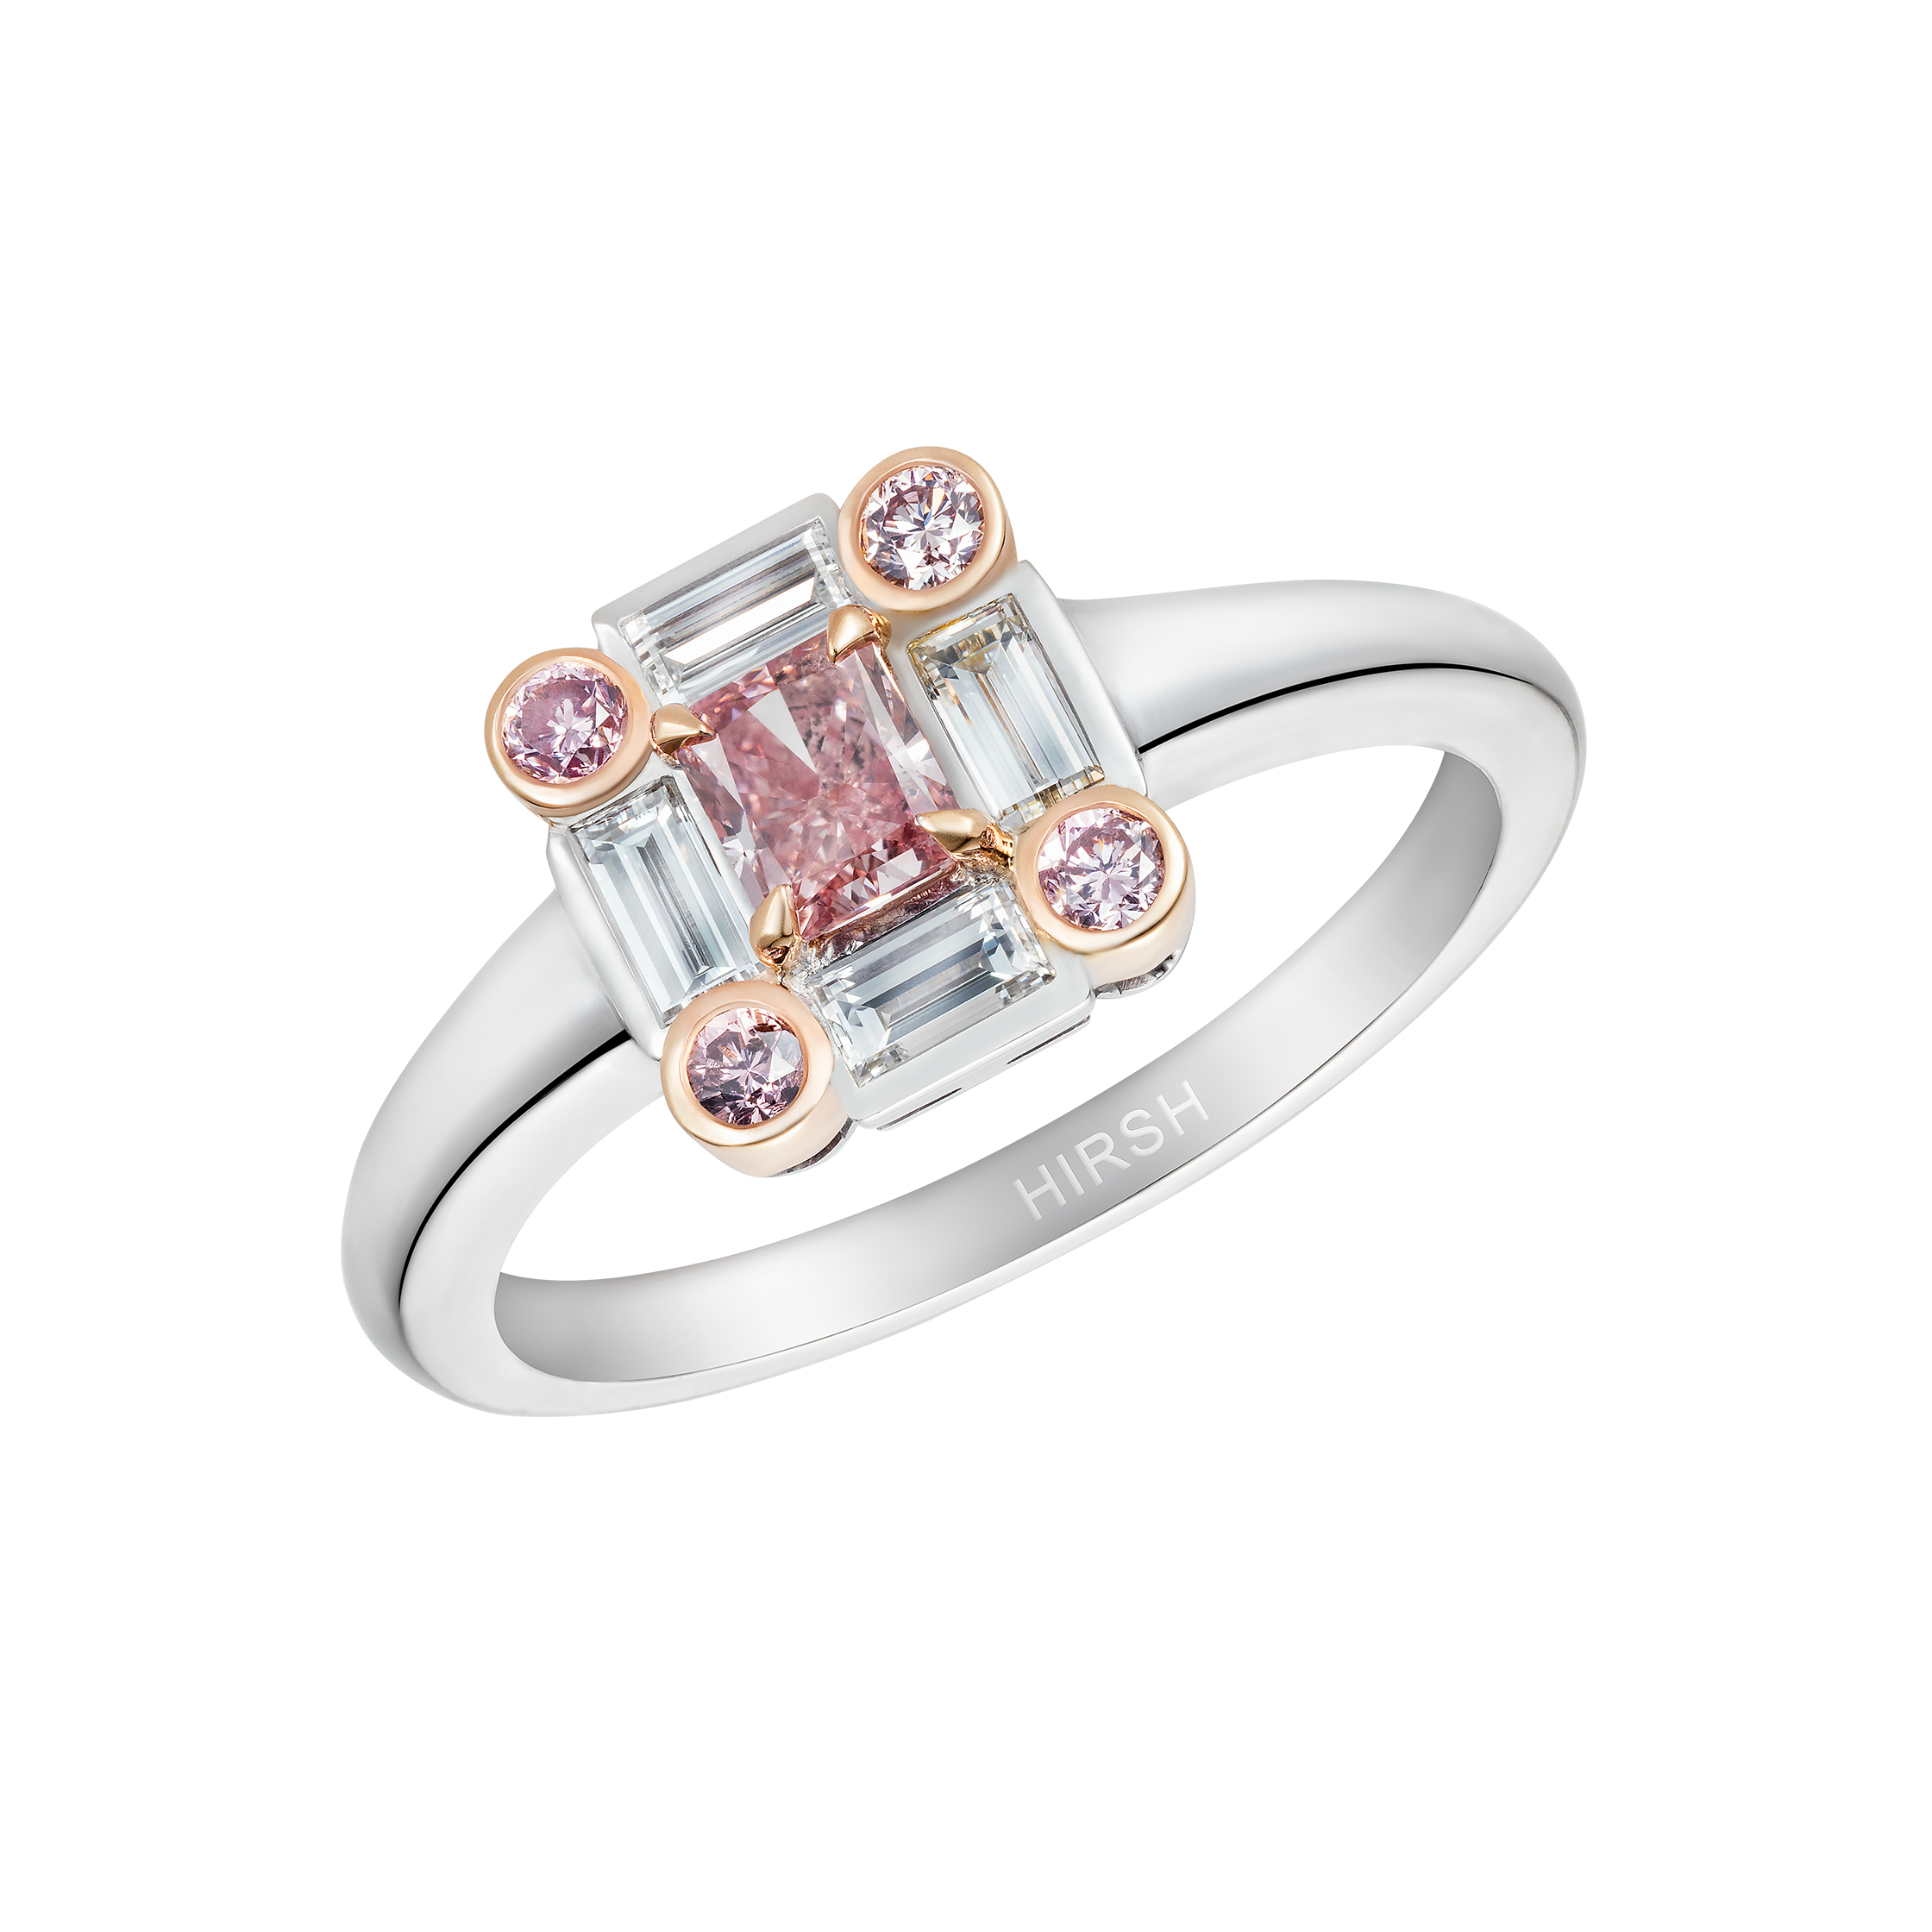 ring tourmaline yg karat with flow and rose pink gold yellow bezel mokum engagement tapered stone mokume rings river catalog gane sandblasted